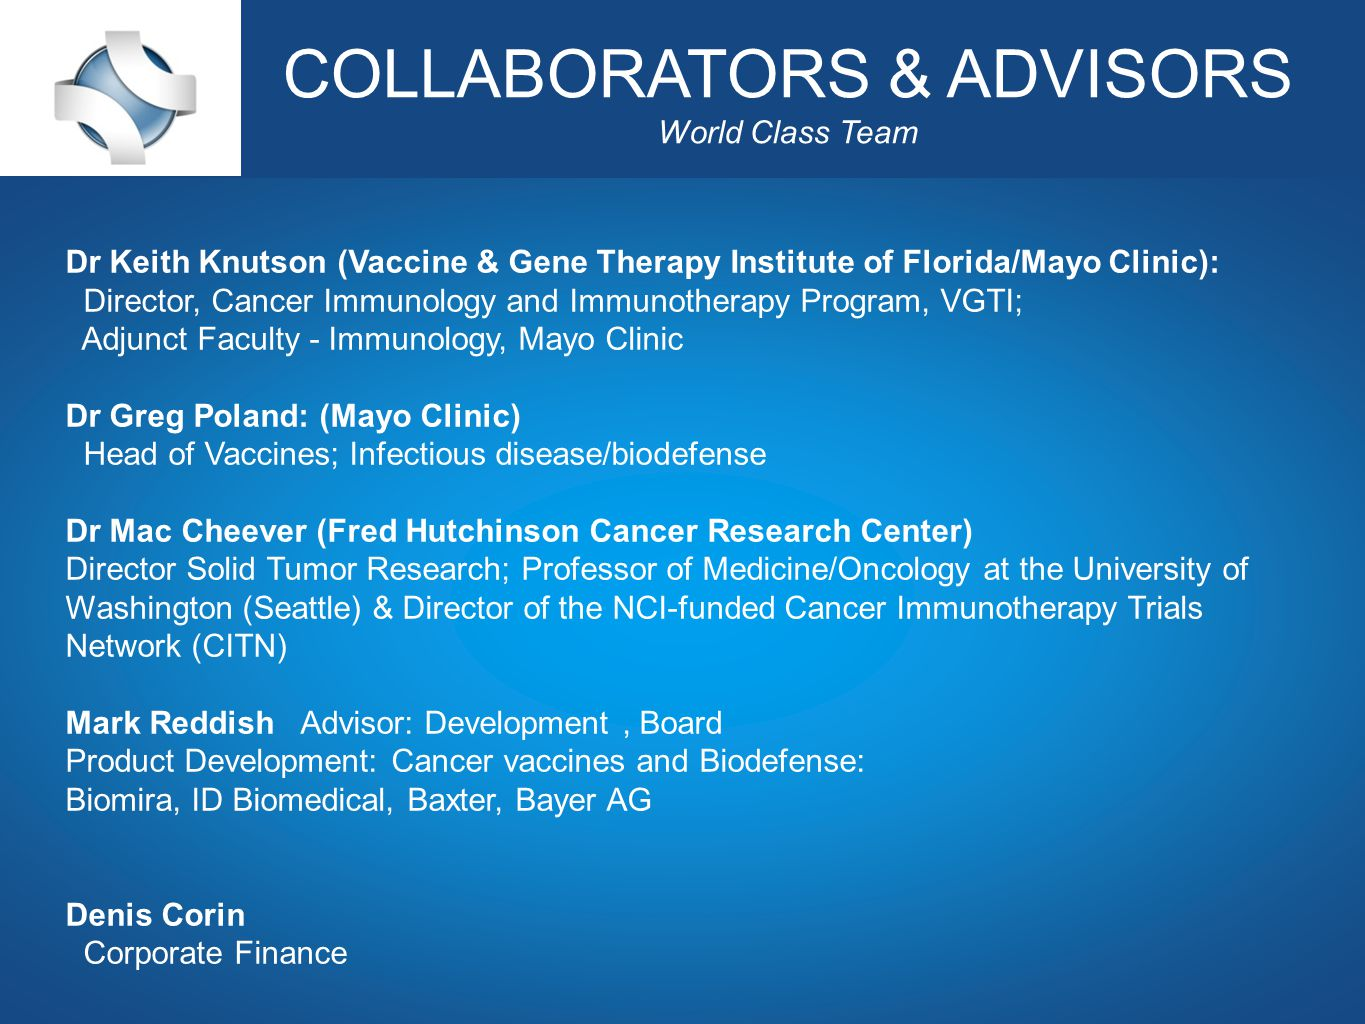 Corporate Presentation July 2012 COLLABORATORS & ADVISORS World Class Team Dr Keith Knutson (Vaccine & Gene Therapy Institute of Florida/Mayo Clinic): Director, Cancer Immunology and Immunotherapy Program, VGTI; Adjunct Faculty - Immunology, Mayo Clinic Dr Greg Poland: (Mayo Clinic) Head of Vaccines; Infectious disease/biodefense Dr Mac Cheever (Fred Hutchinson Cancer Research Center) Director Solid Tumor Research; Professor of Medicine/Oncology at the University of Washington (Seattle) & Director of the NCI-funded Cancer Immunotherapy Trials Network (CITN) Mark Reddish Advisor: Development, Board Product Development: Cancer vaccines and Biodefense: Biomira, ID Biomedical, Baxter, Bayer AG Denis Corin Corporate Finance